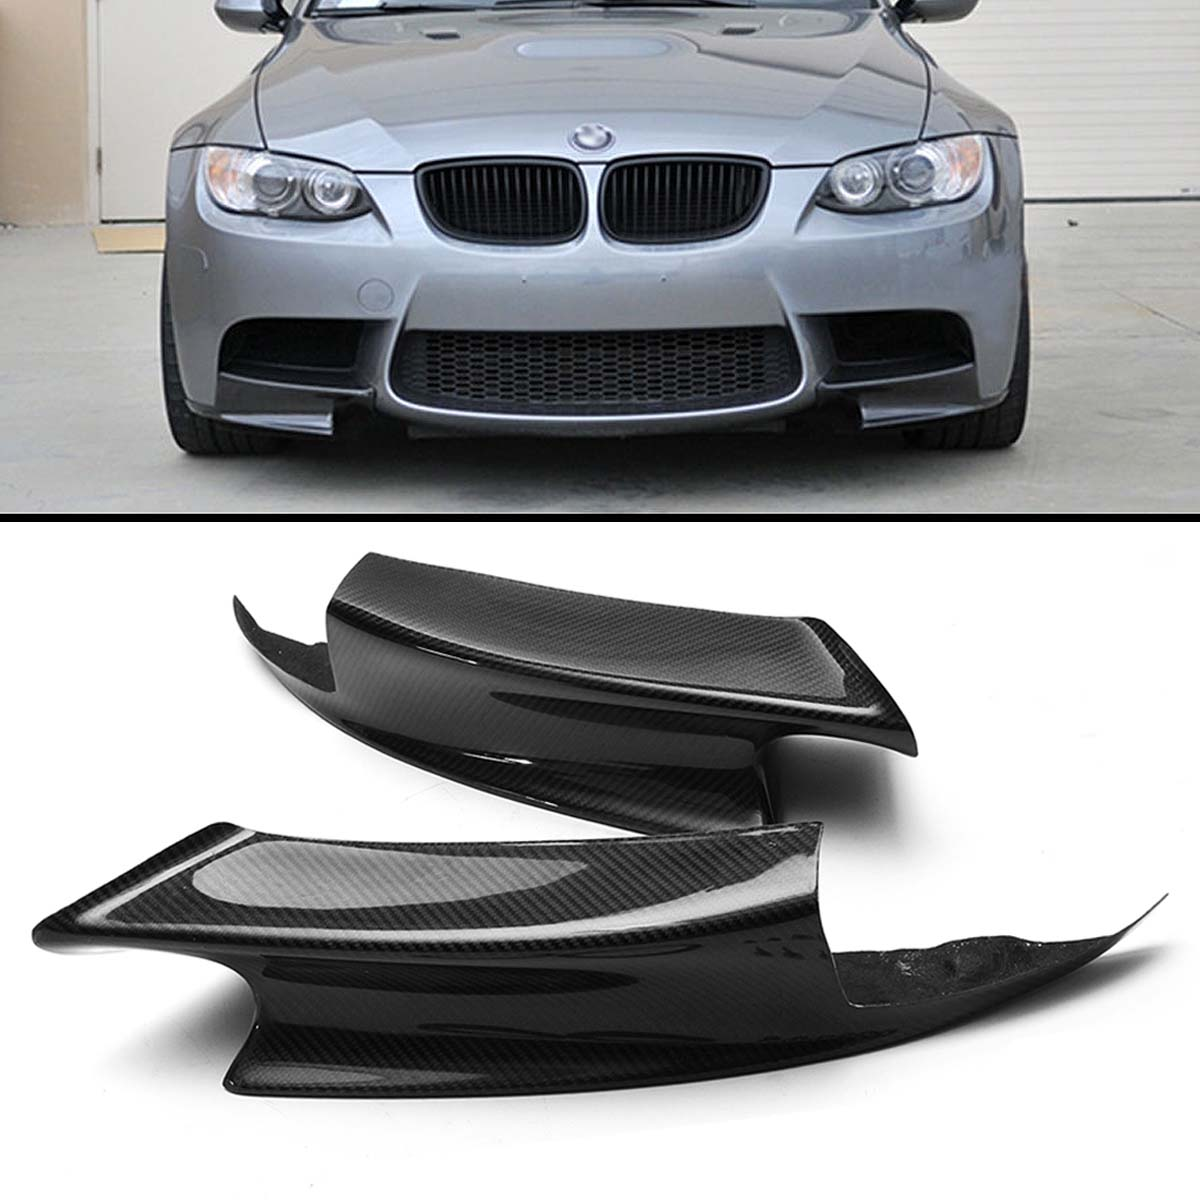 2PCS Carbon Fiber Front Bumper Lip Splitter Spoiler Flap Cupwings for B MW 07-12 E92 E93 M3 M-sport Bumper fit 05 06 07 08 09 10 11 12 13 chevy corvette c6 base front bumper lip splitter spoiler pu